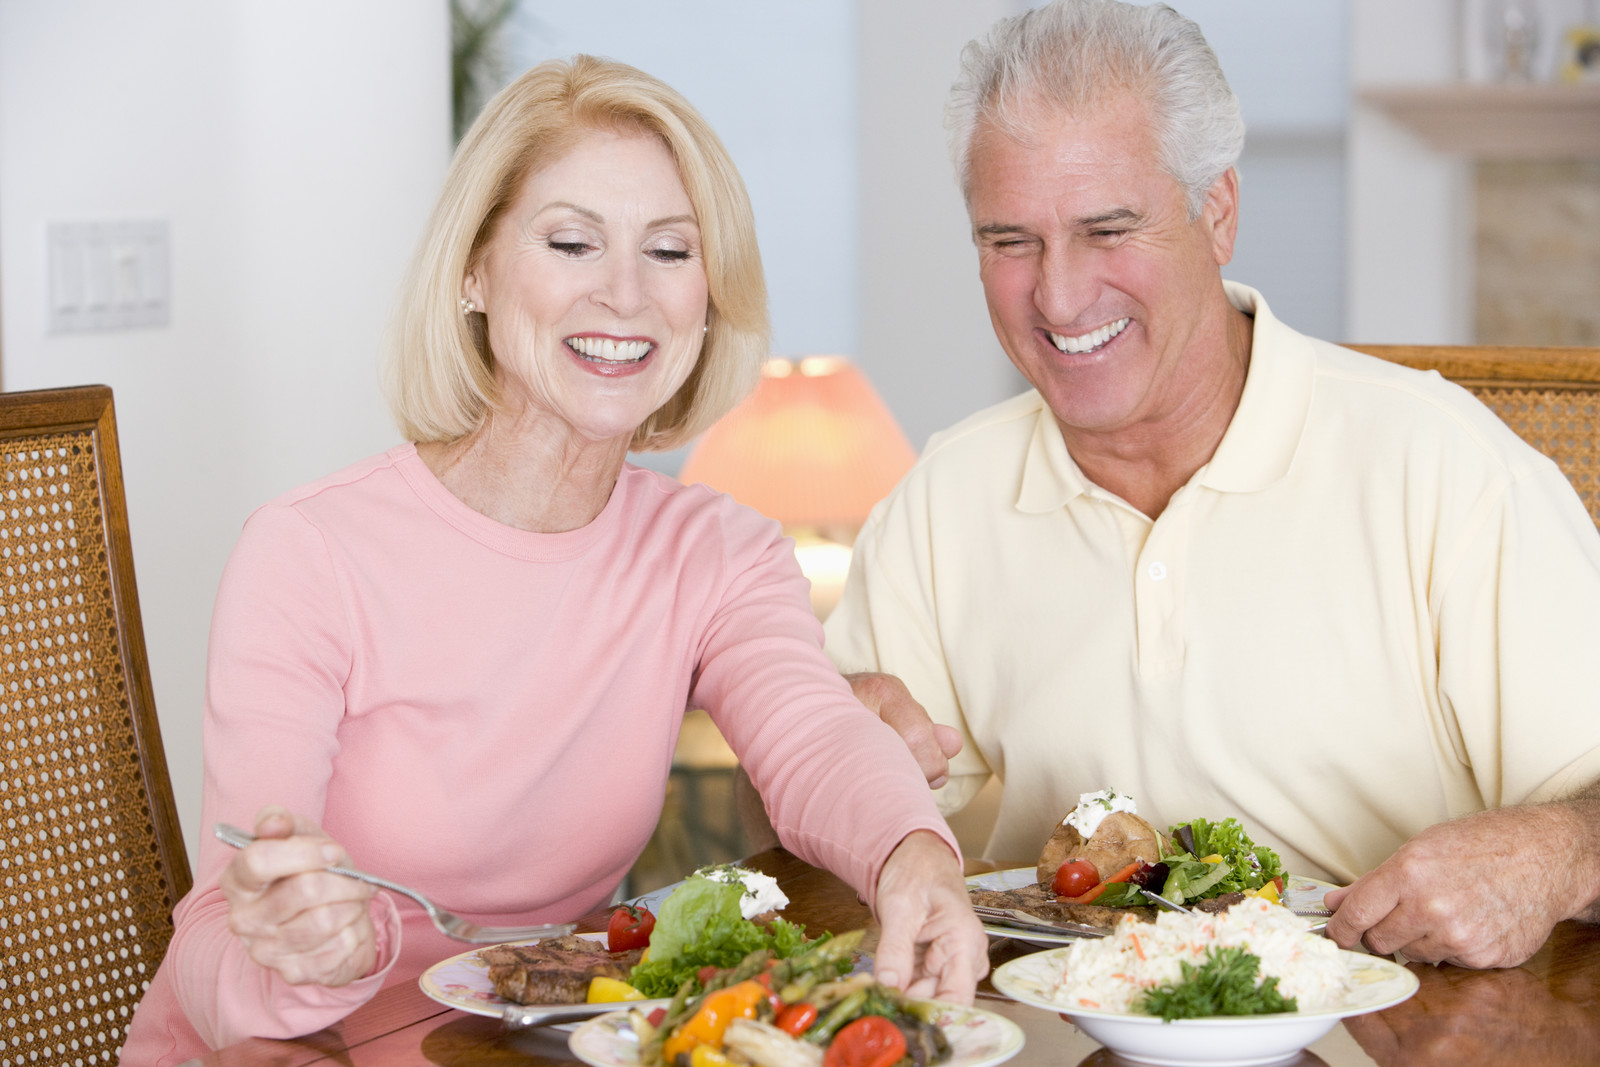 senior couple smiling and enjoying healthy meal at the dinner table